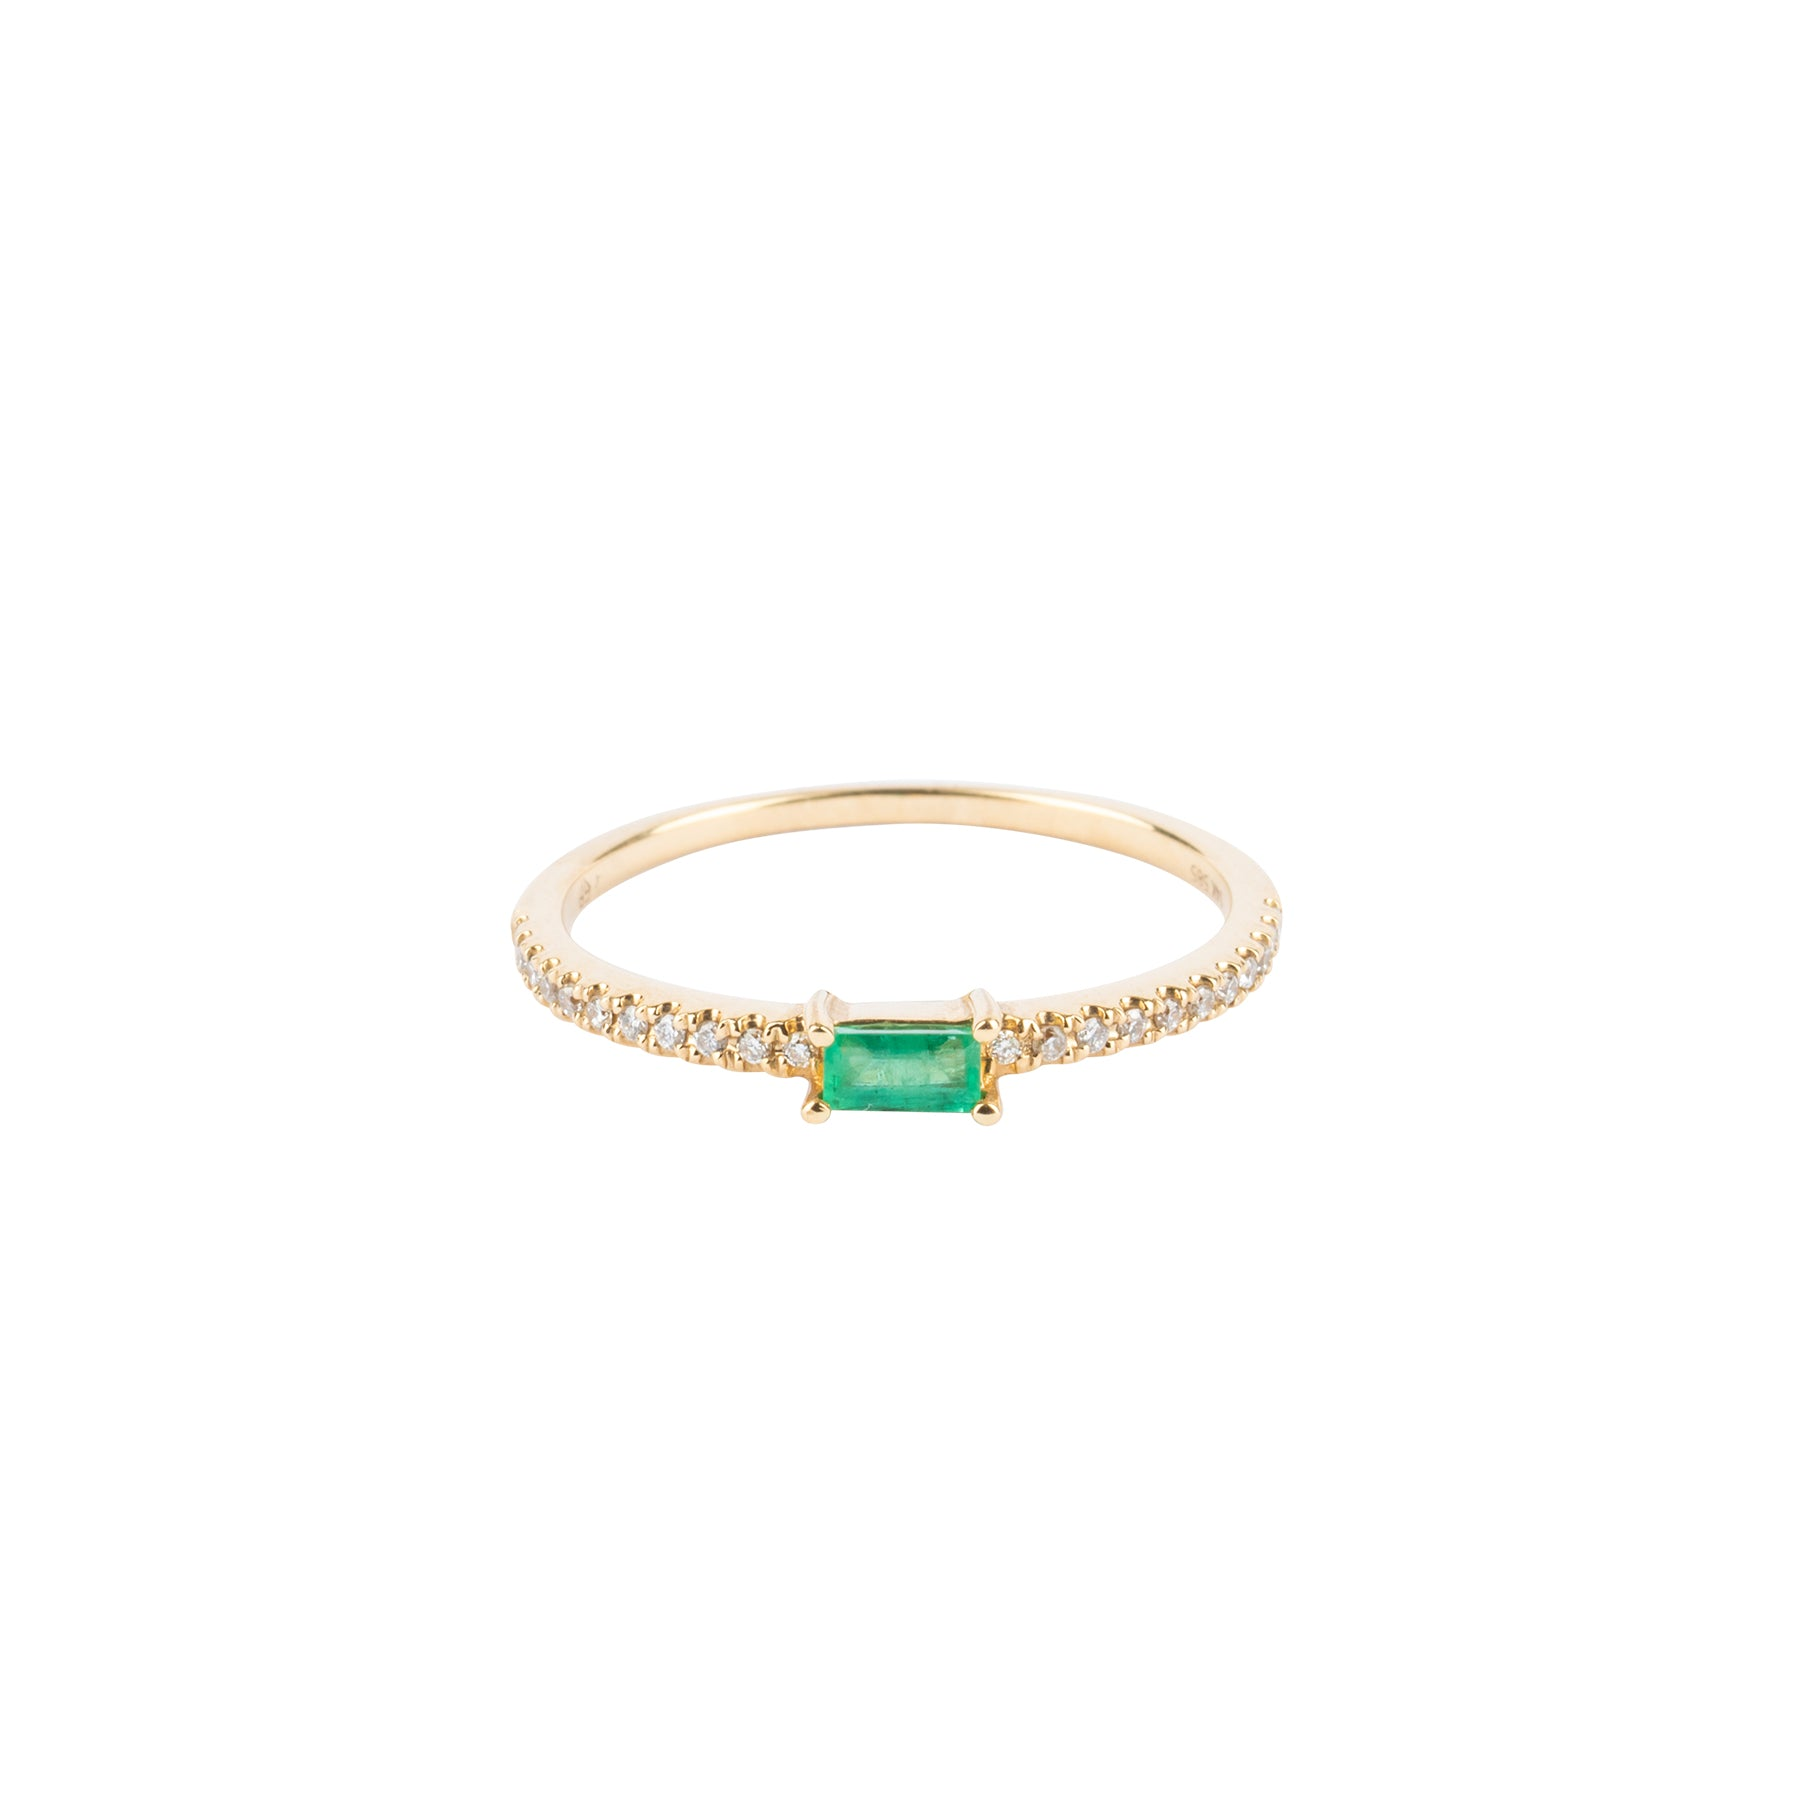 Emerald Baguette Prong Set Diamond Ring